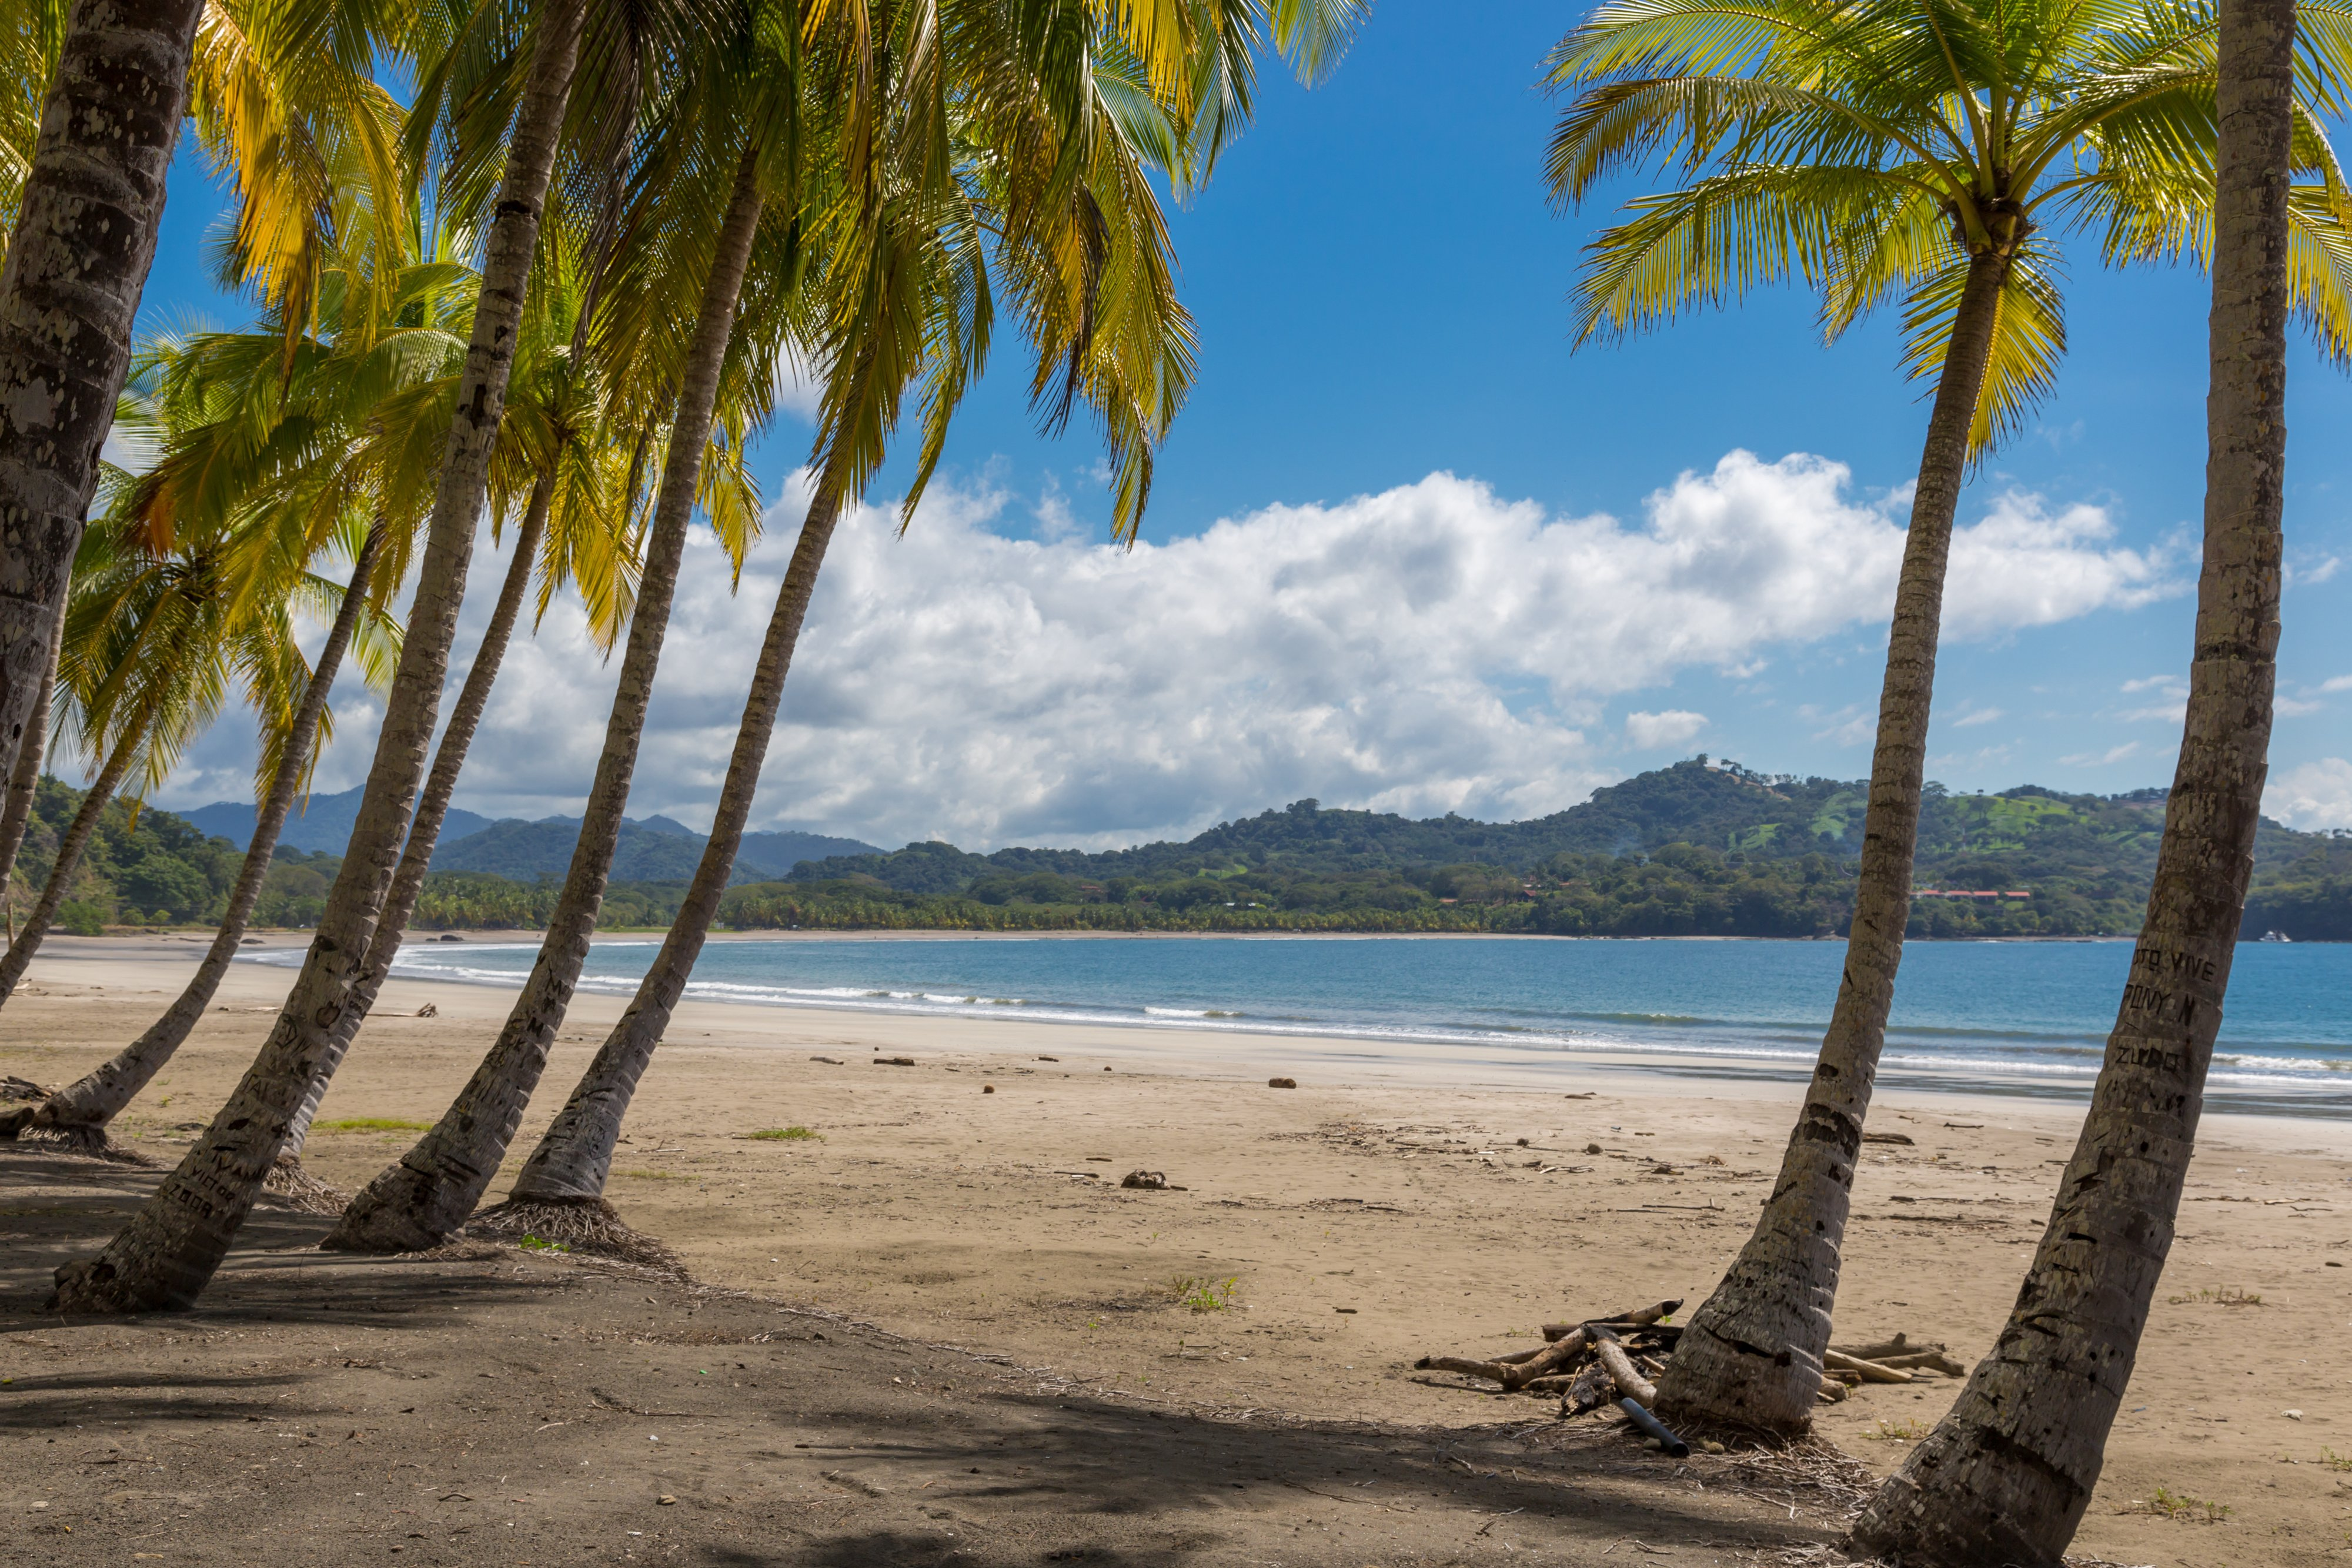 Tamarindo beach with palm trees